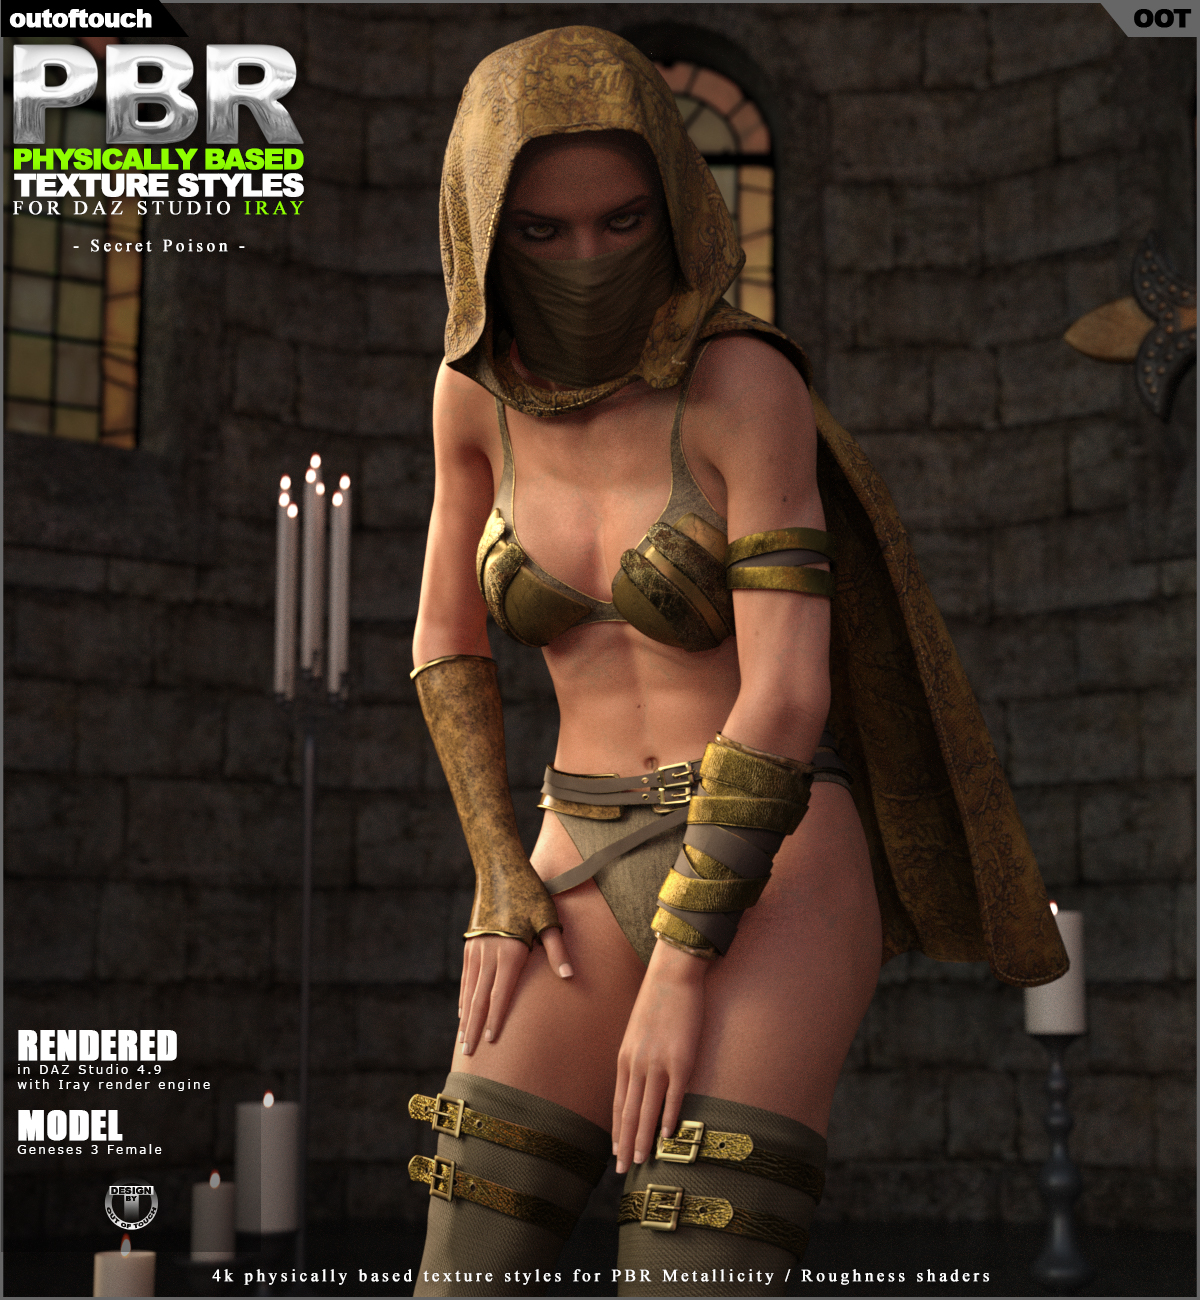 OOT PBR Texture Styles for Secret Poison